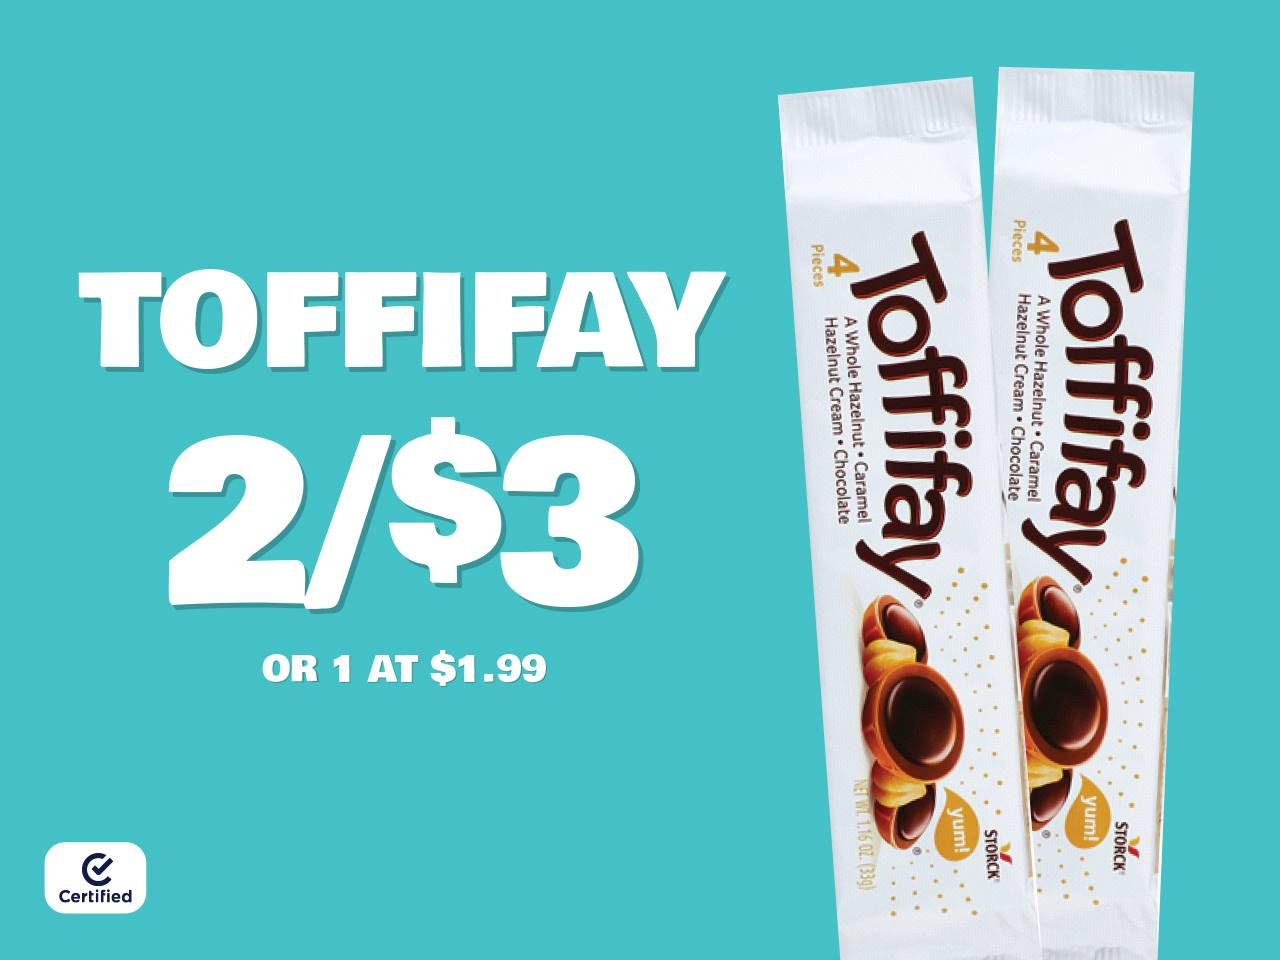 Toffifay 2 for $3 or 1 at $1.99